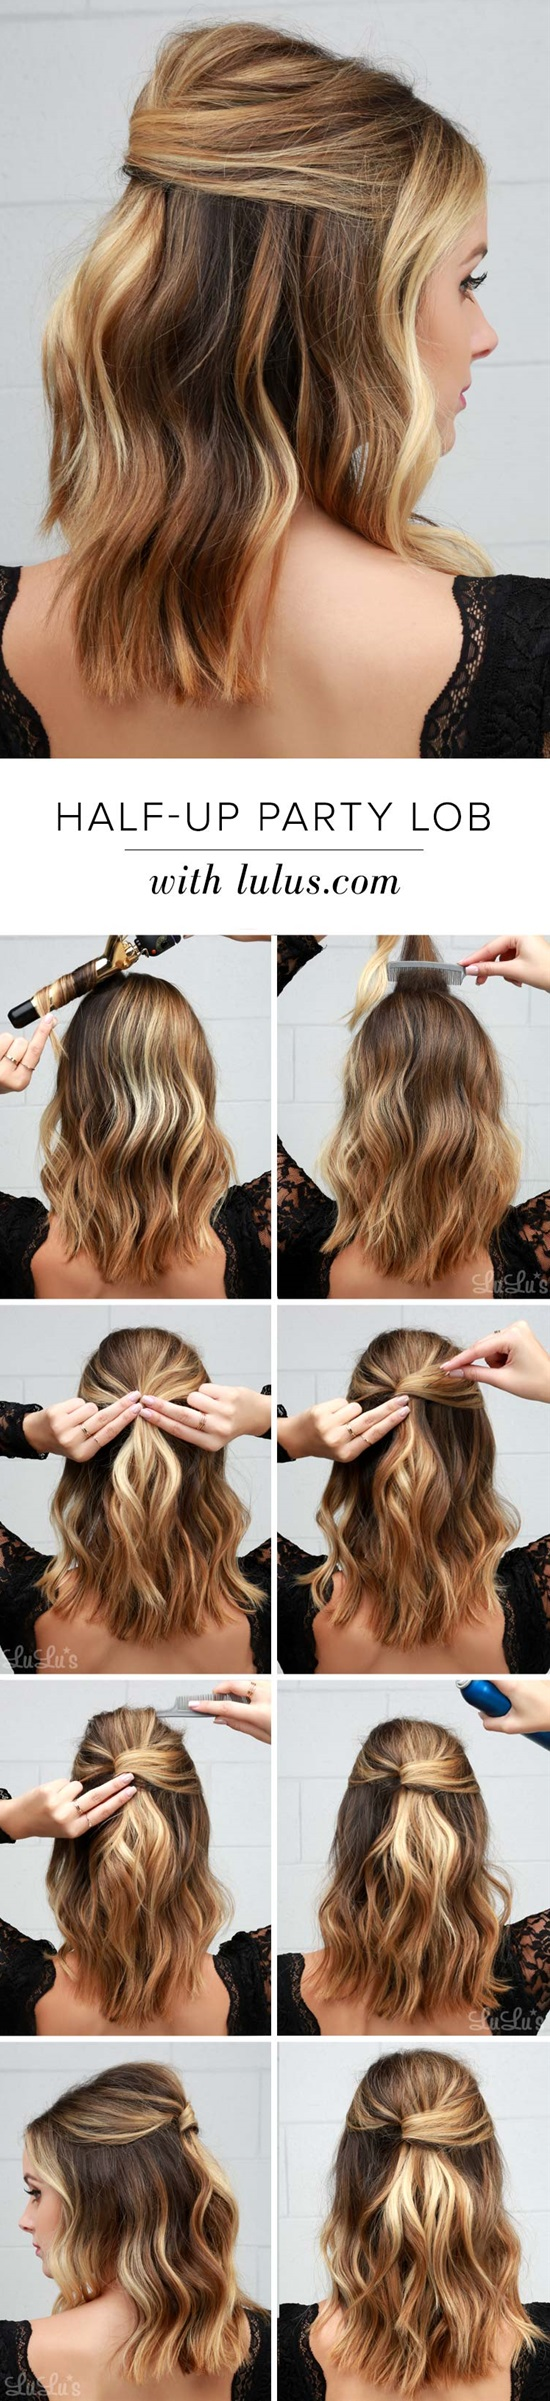 easy hairstyles for wedding | find your perfect hair style